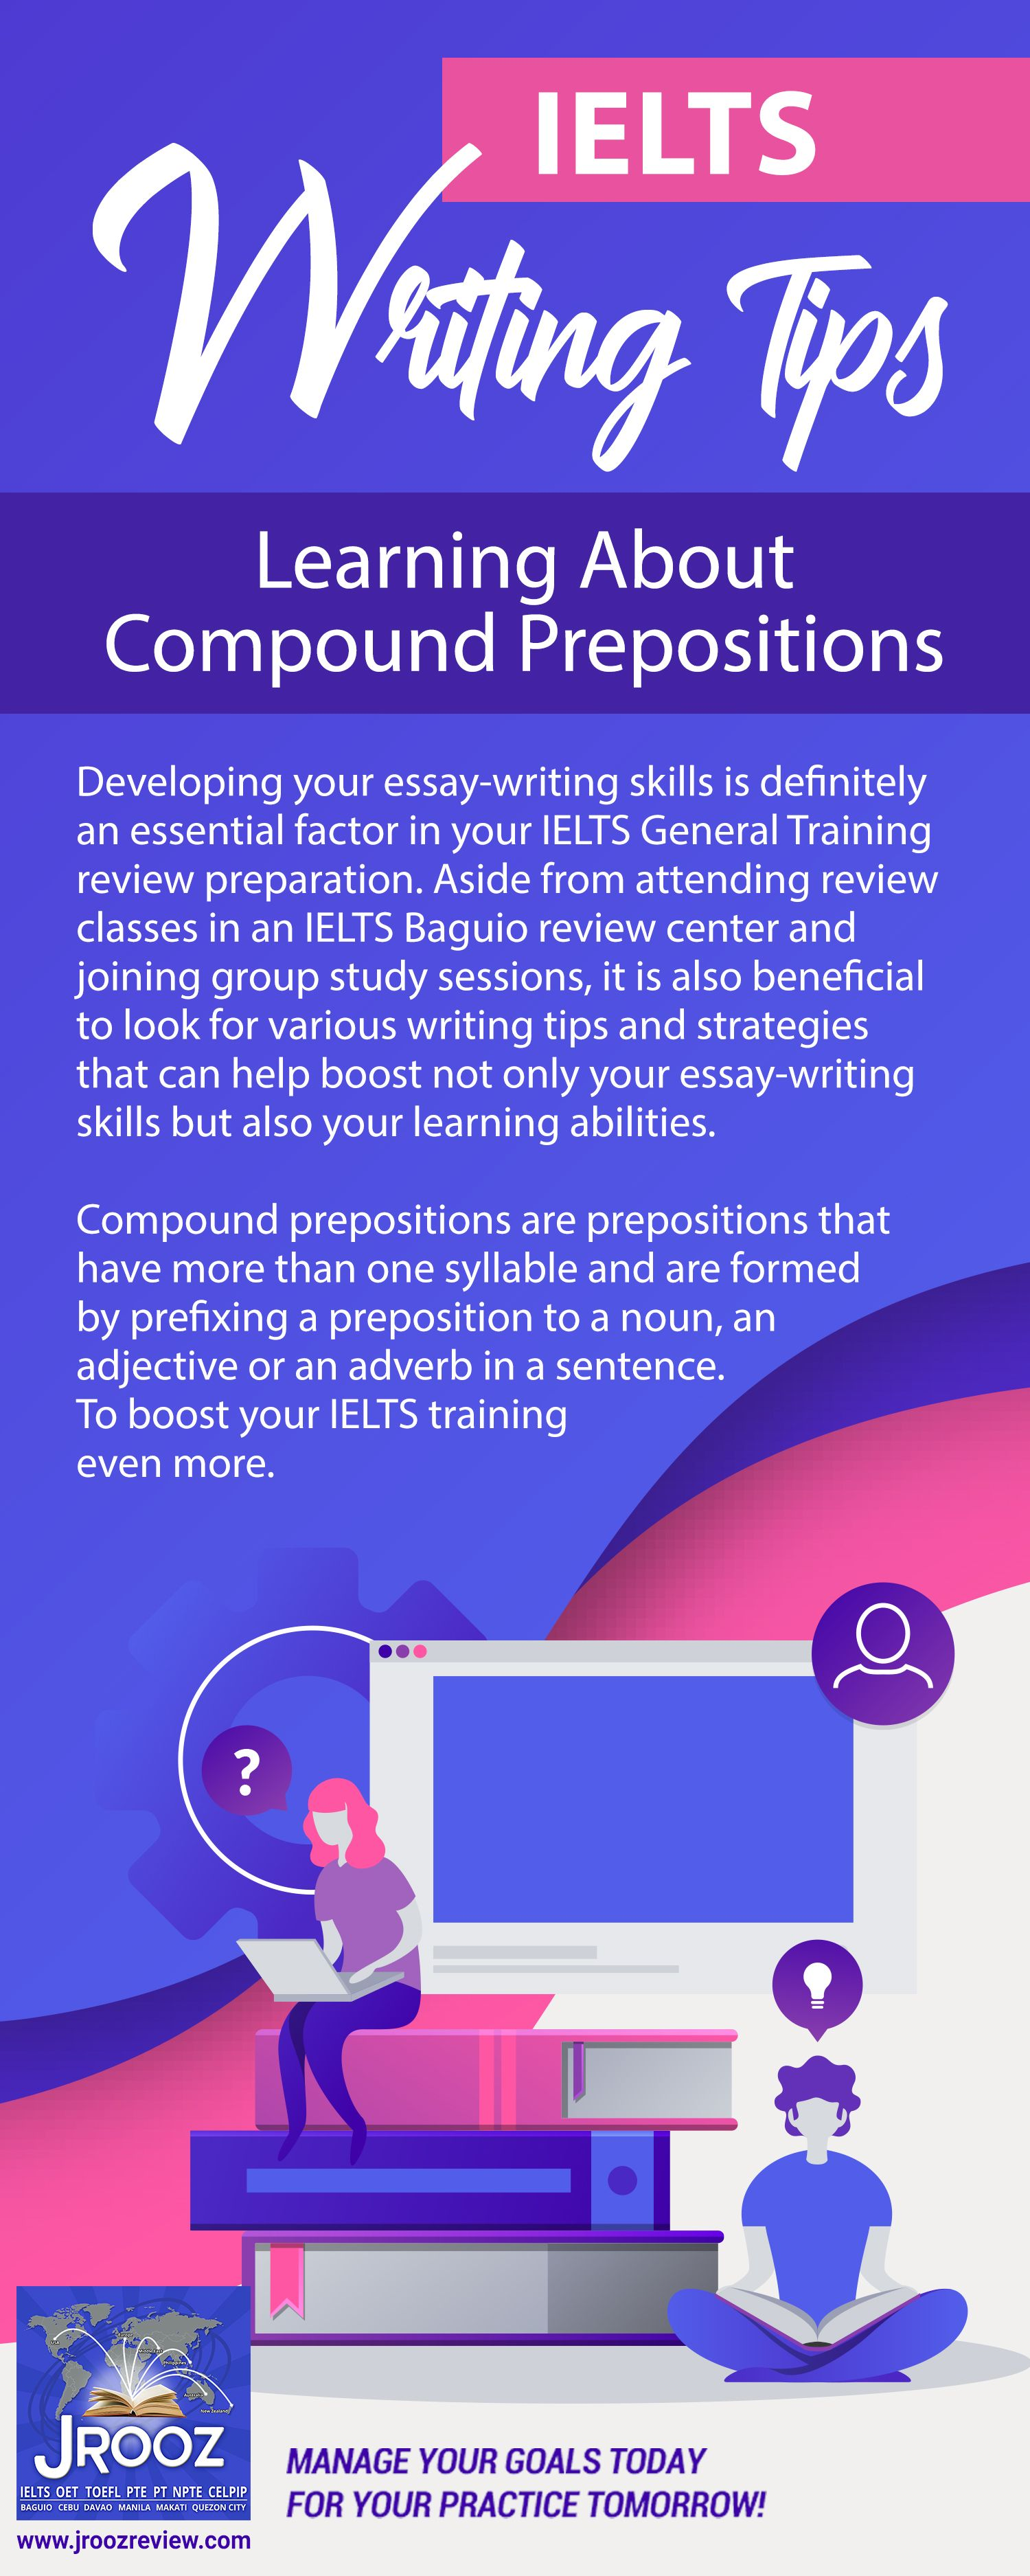 Ielts Writing Tips Learning About Compound Prepositions